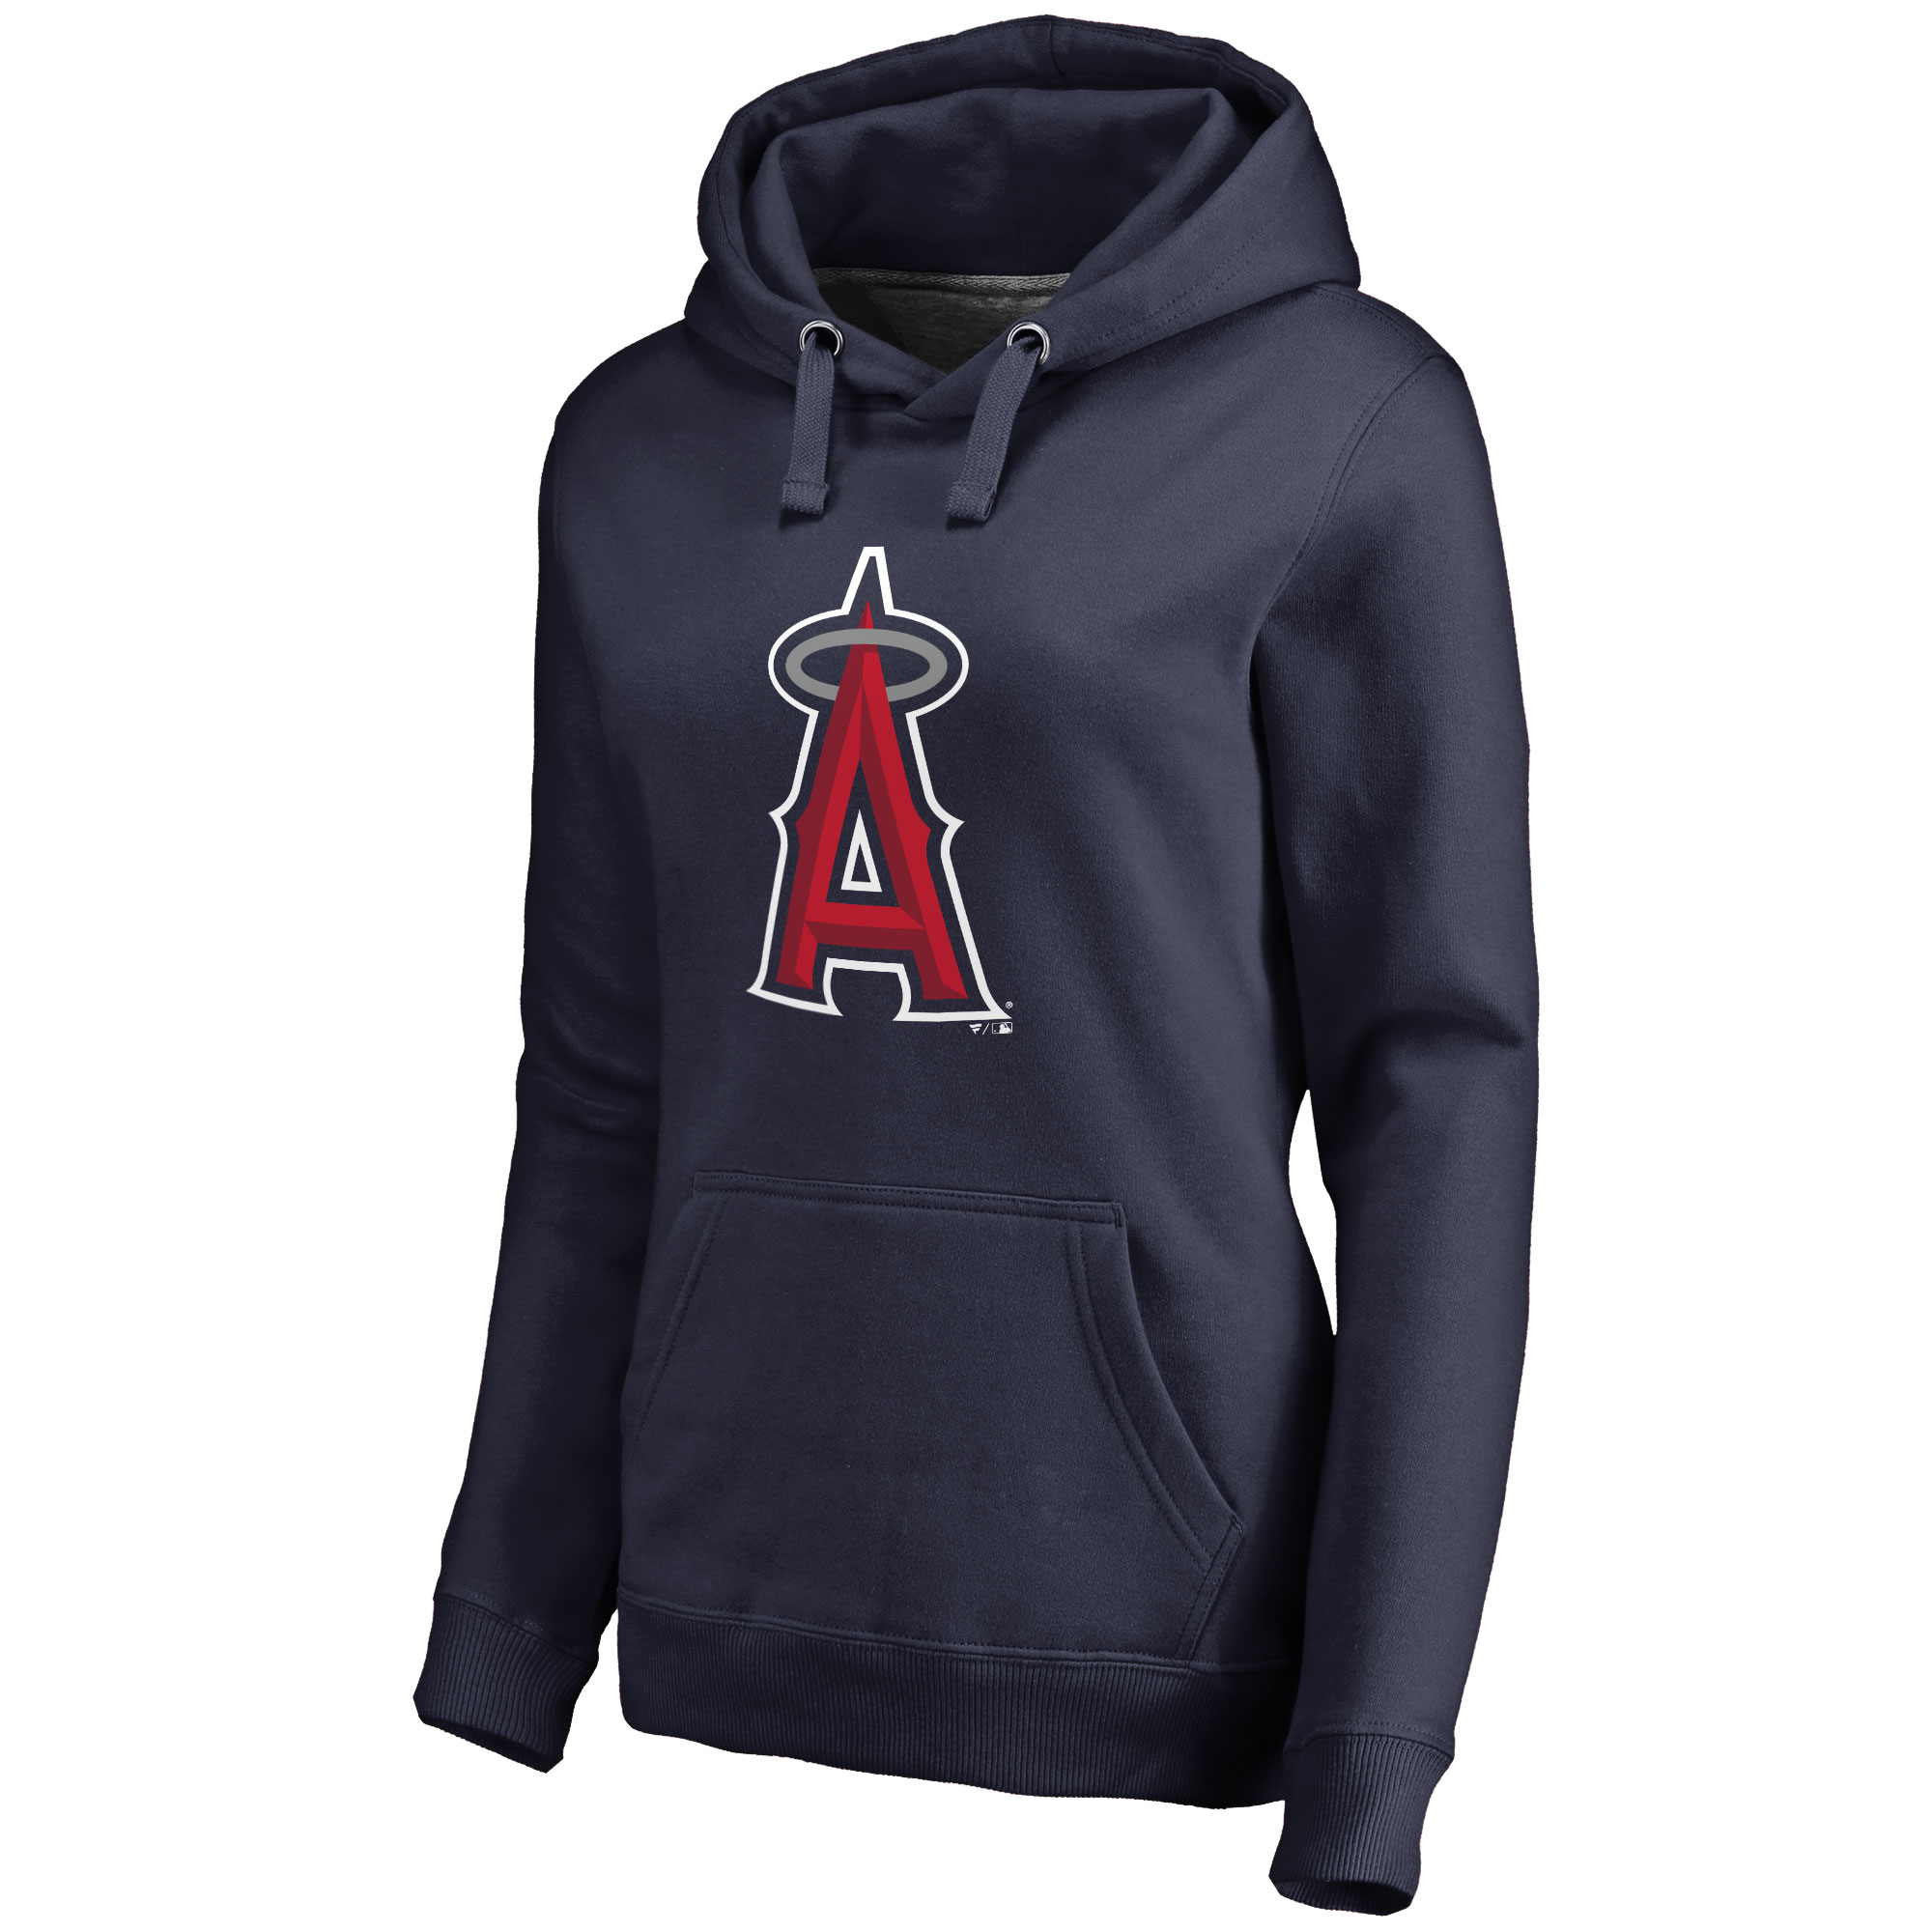 Los Angeles Angels Women's Secondary Color Primary Logo Pullover Hoodie - Navy